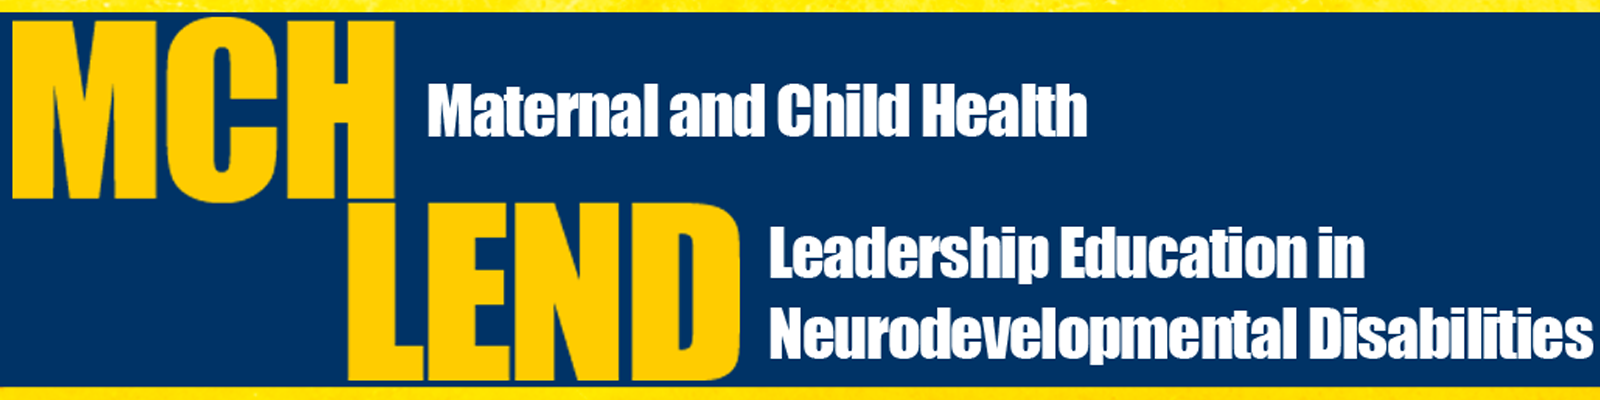 Maternal and Child Health in Leadership Education in Neurodevelopmental Disabilities